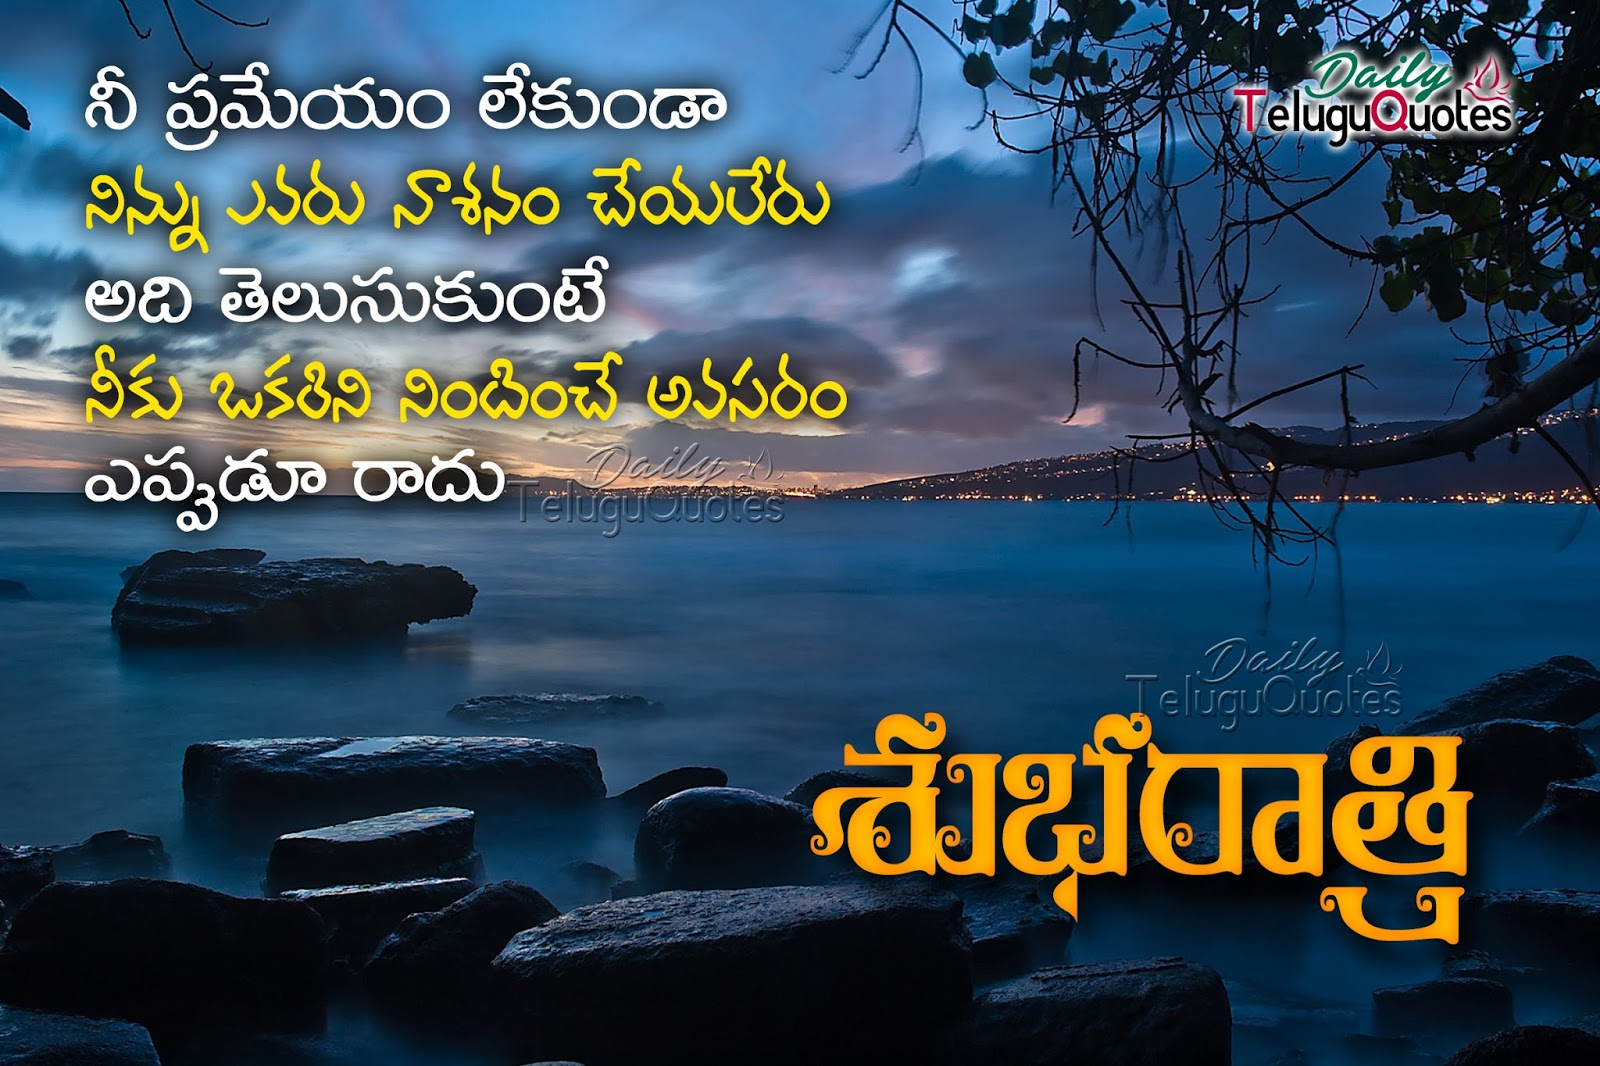 Good Night Images With Quotes In Telugu The Best Hd Wallpaper